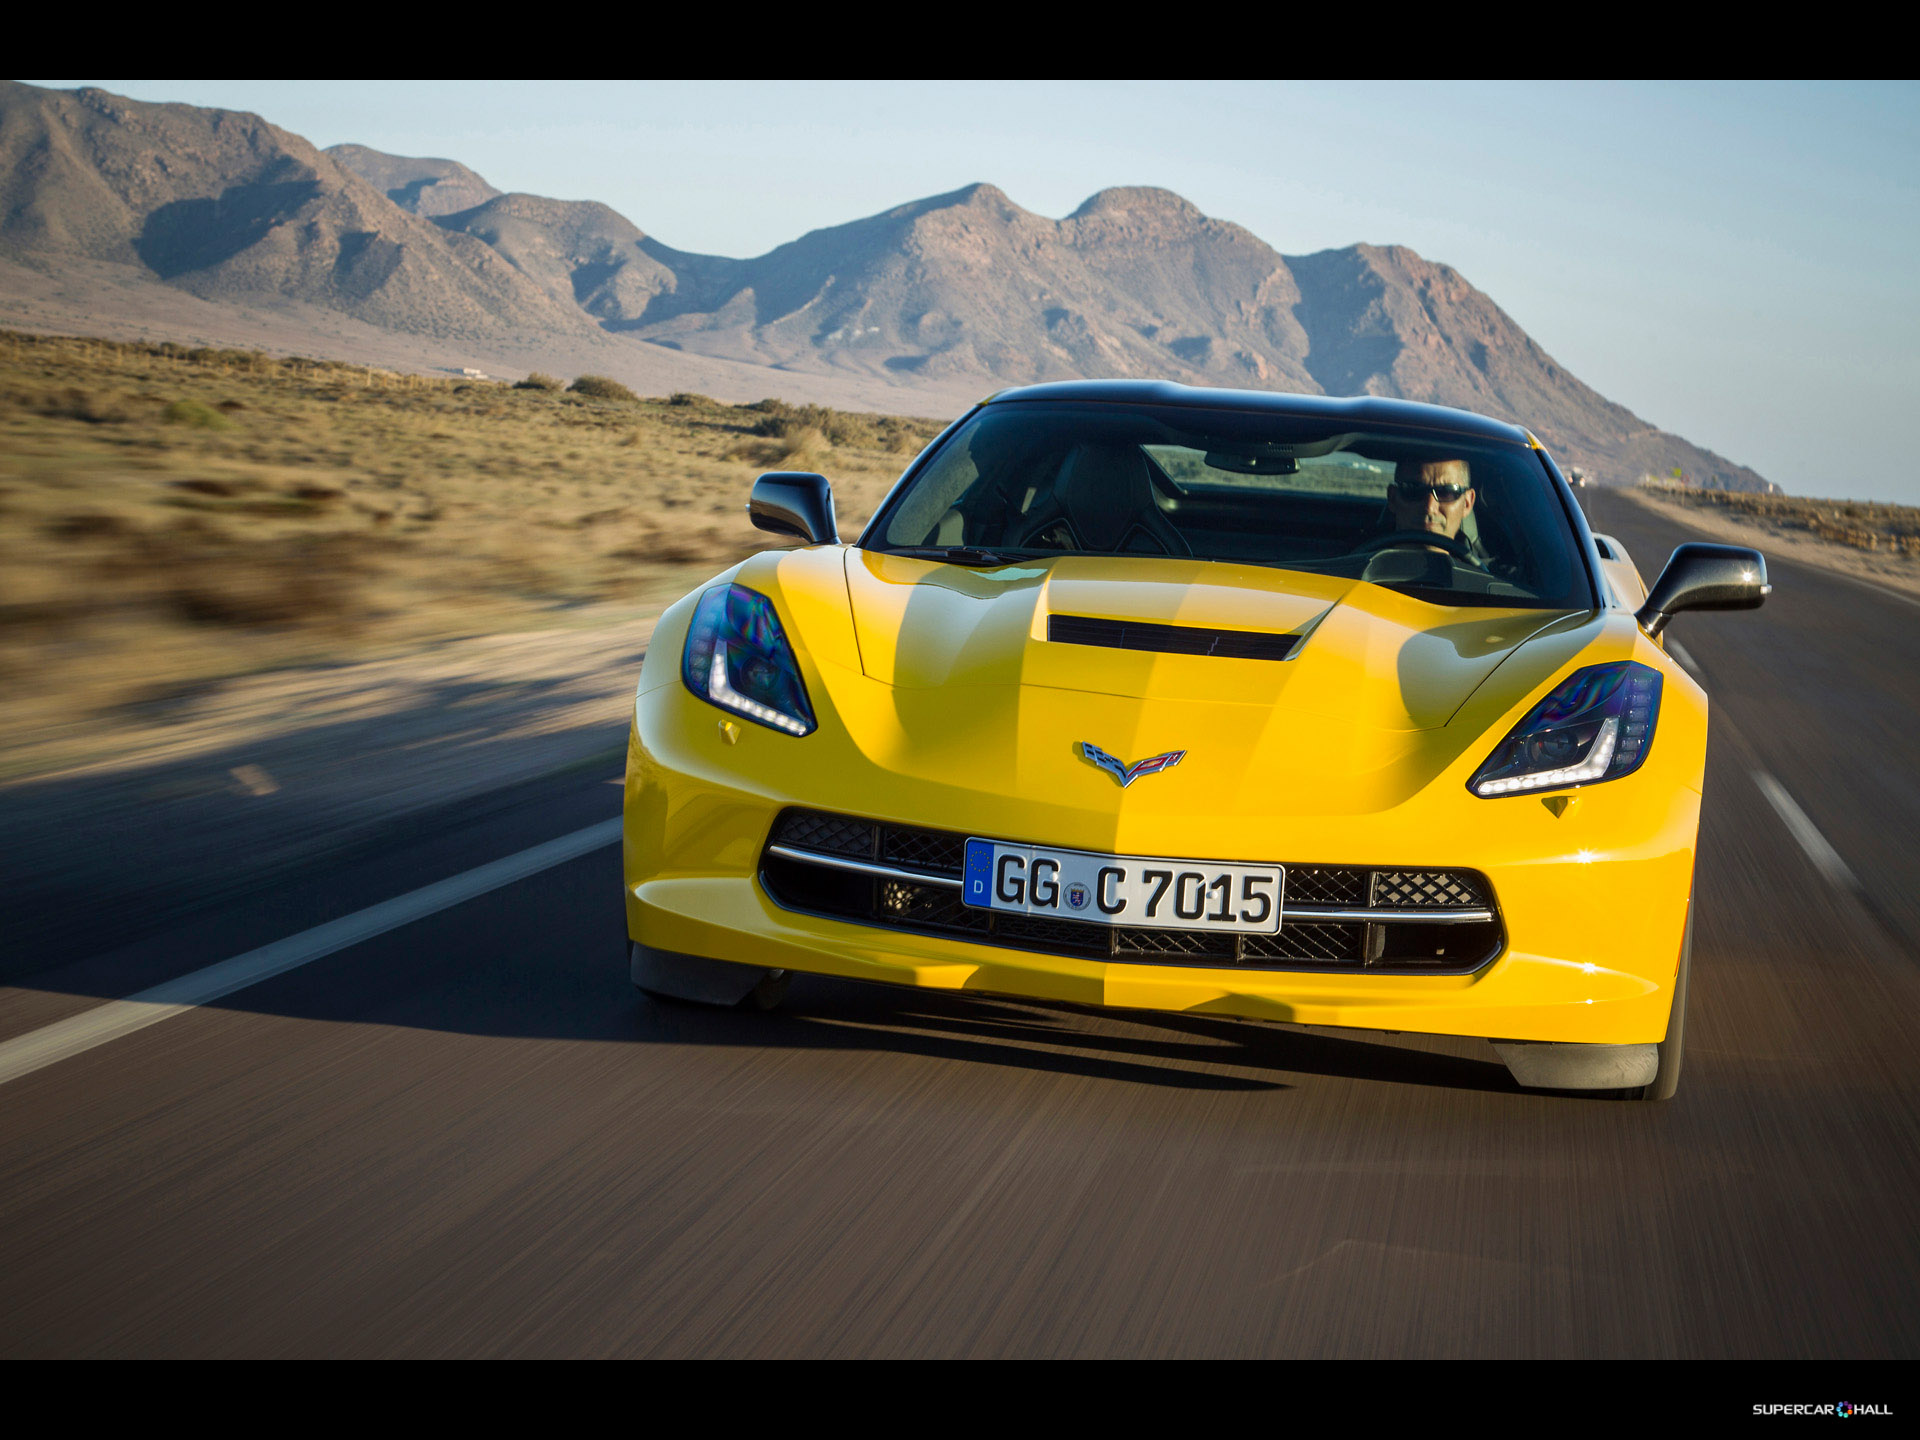 2018 Chevrolet Corvette Stingray EU Version photo - 5